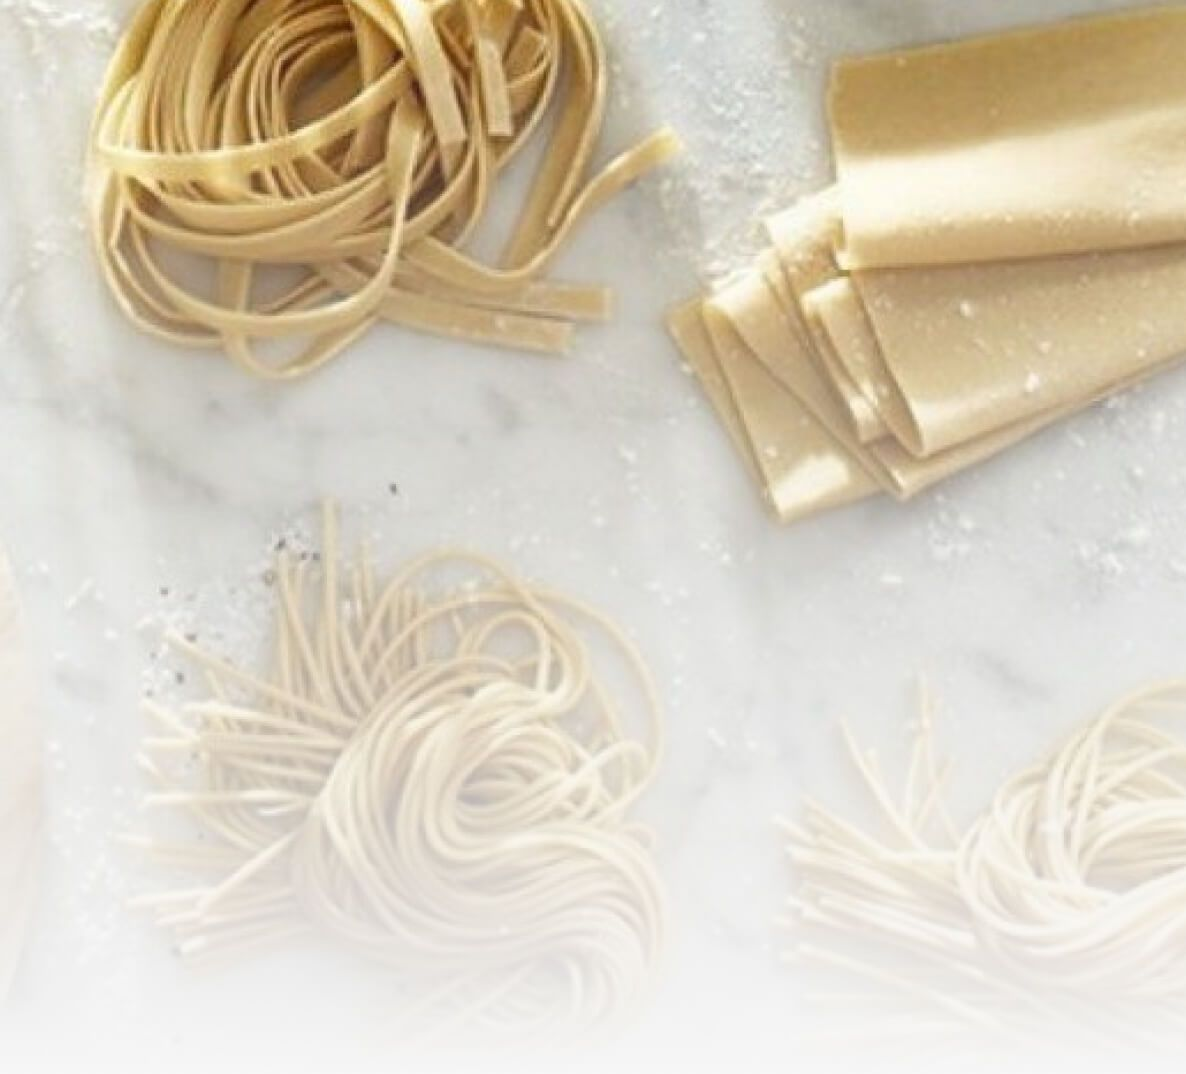 A variety of pastas resting on a kitchen countertop.